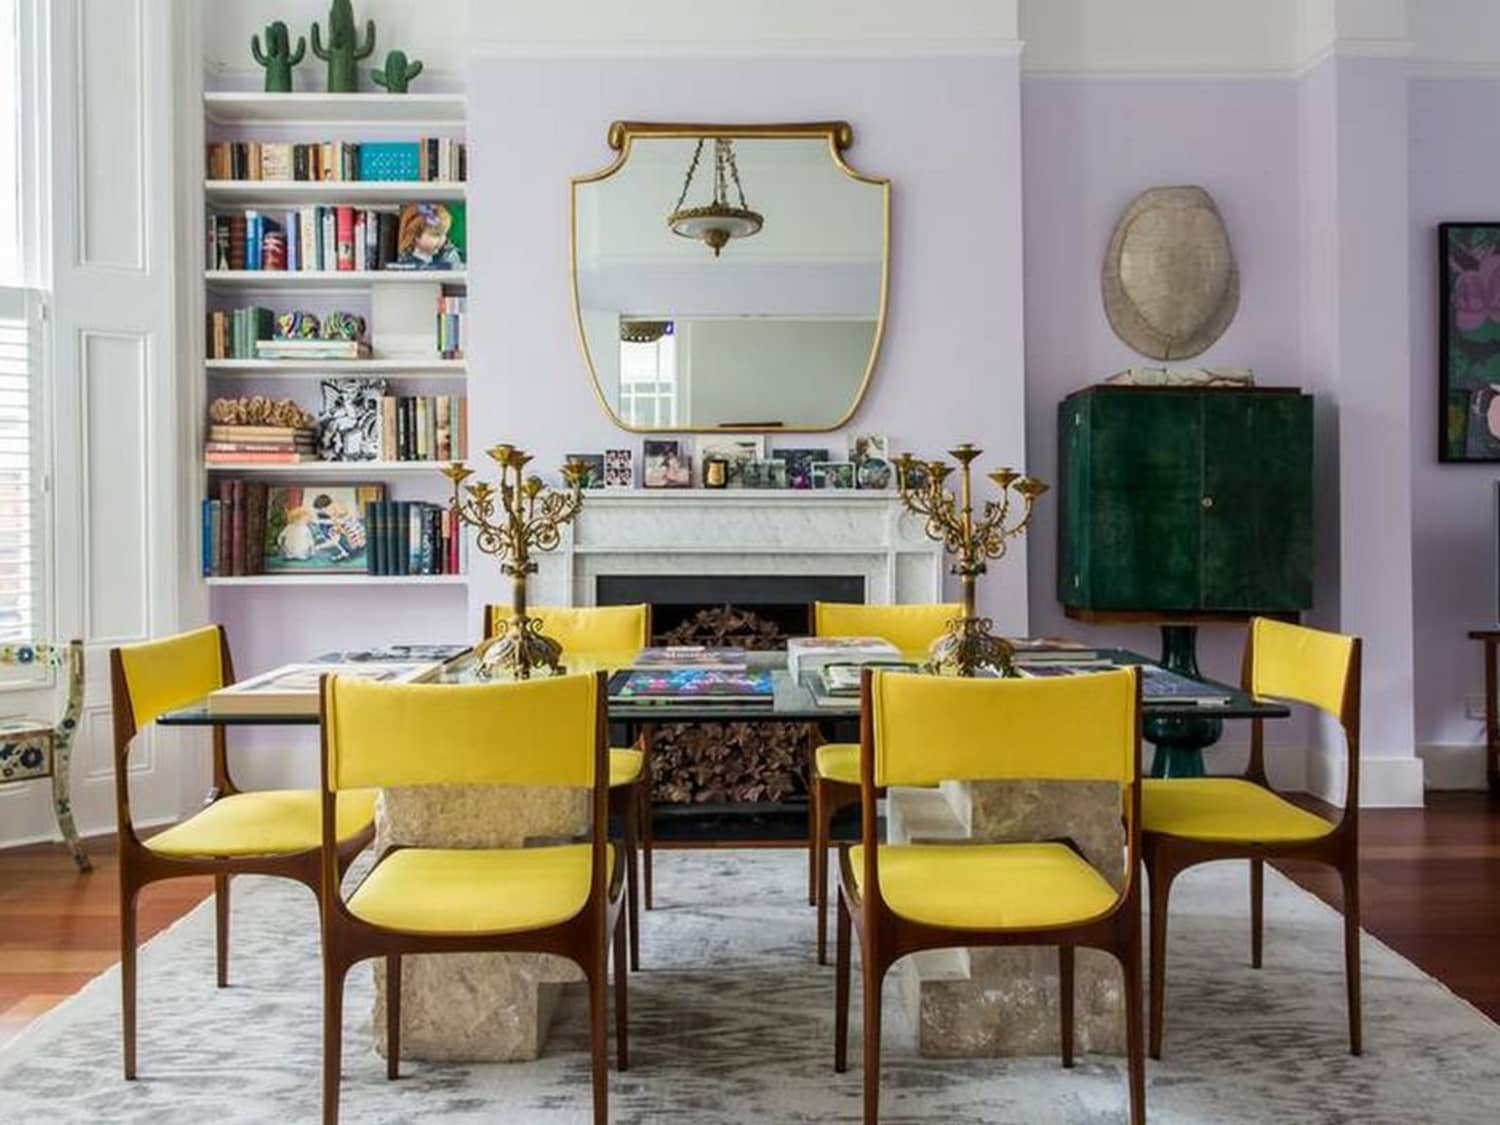 glamorous mustard yellow color living room | 2018 Room Color Trends - Lavender, Mustard Yellow ...